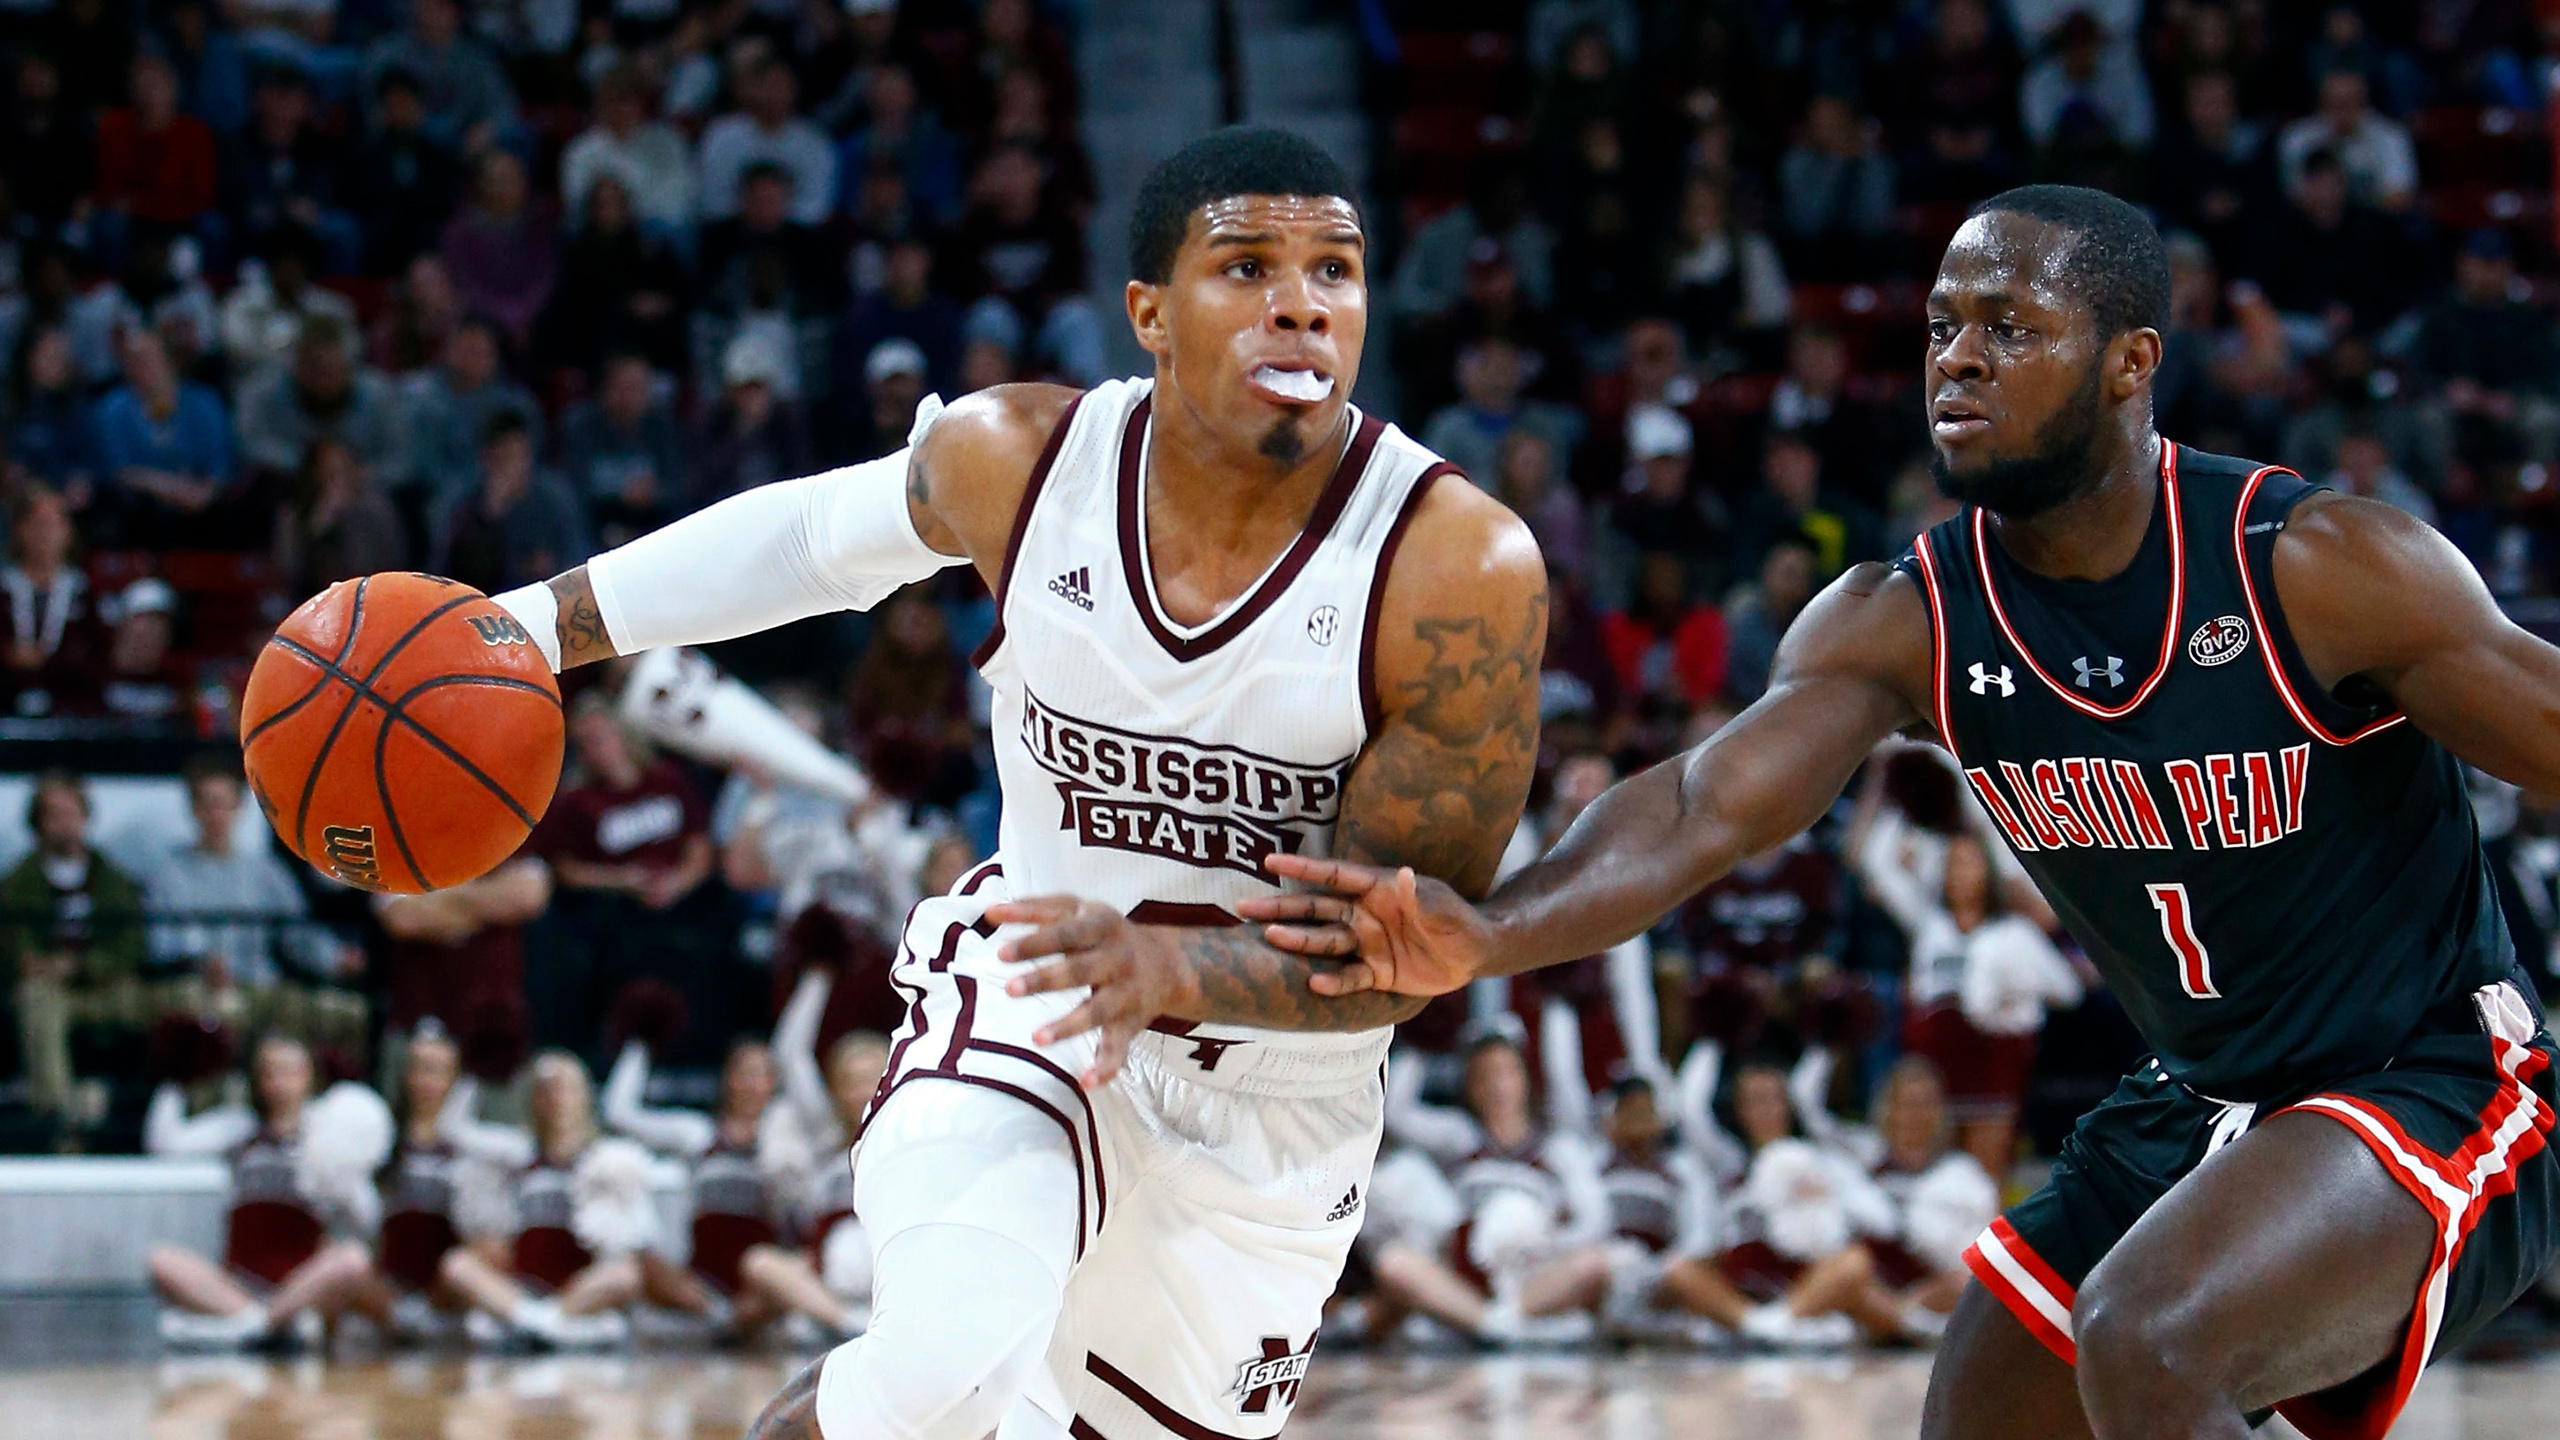 Cincinnati vs. #18 Mississippi State (M Basketball) (re-air)